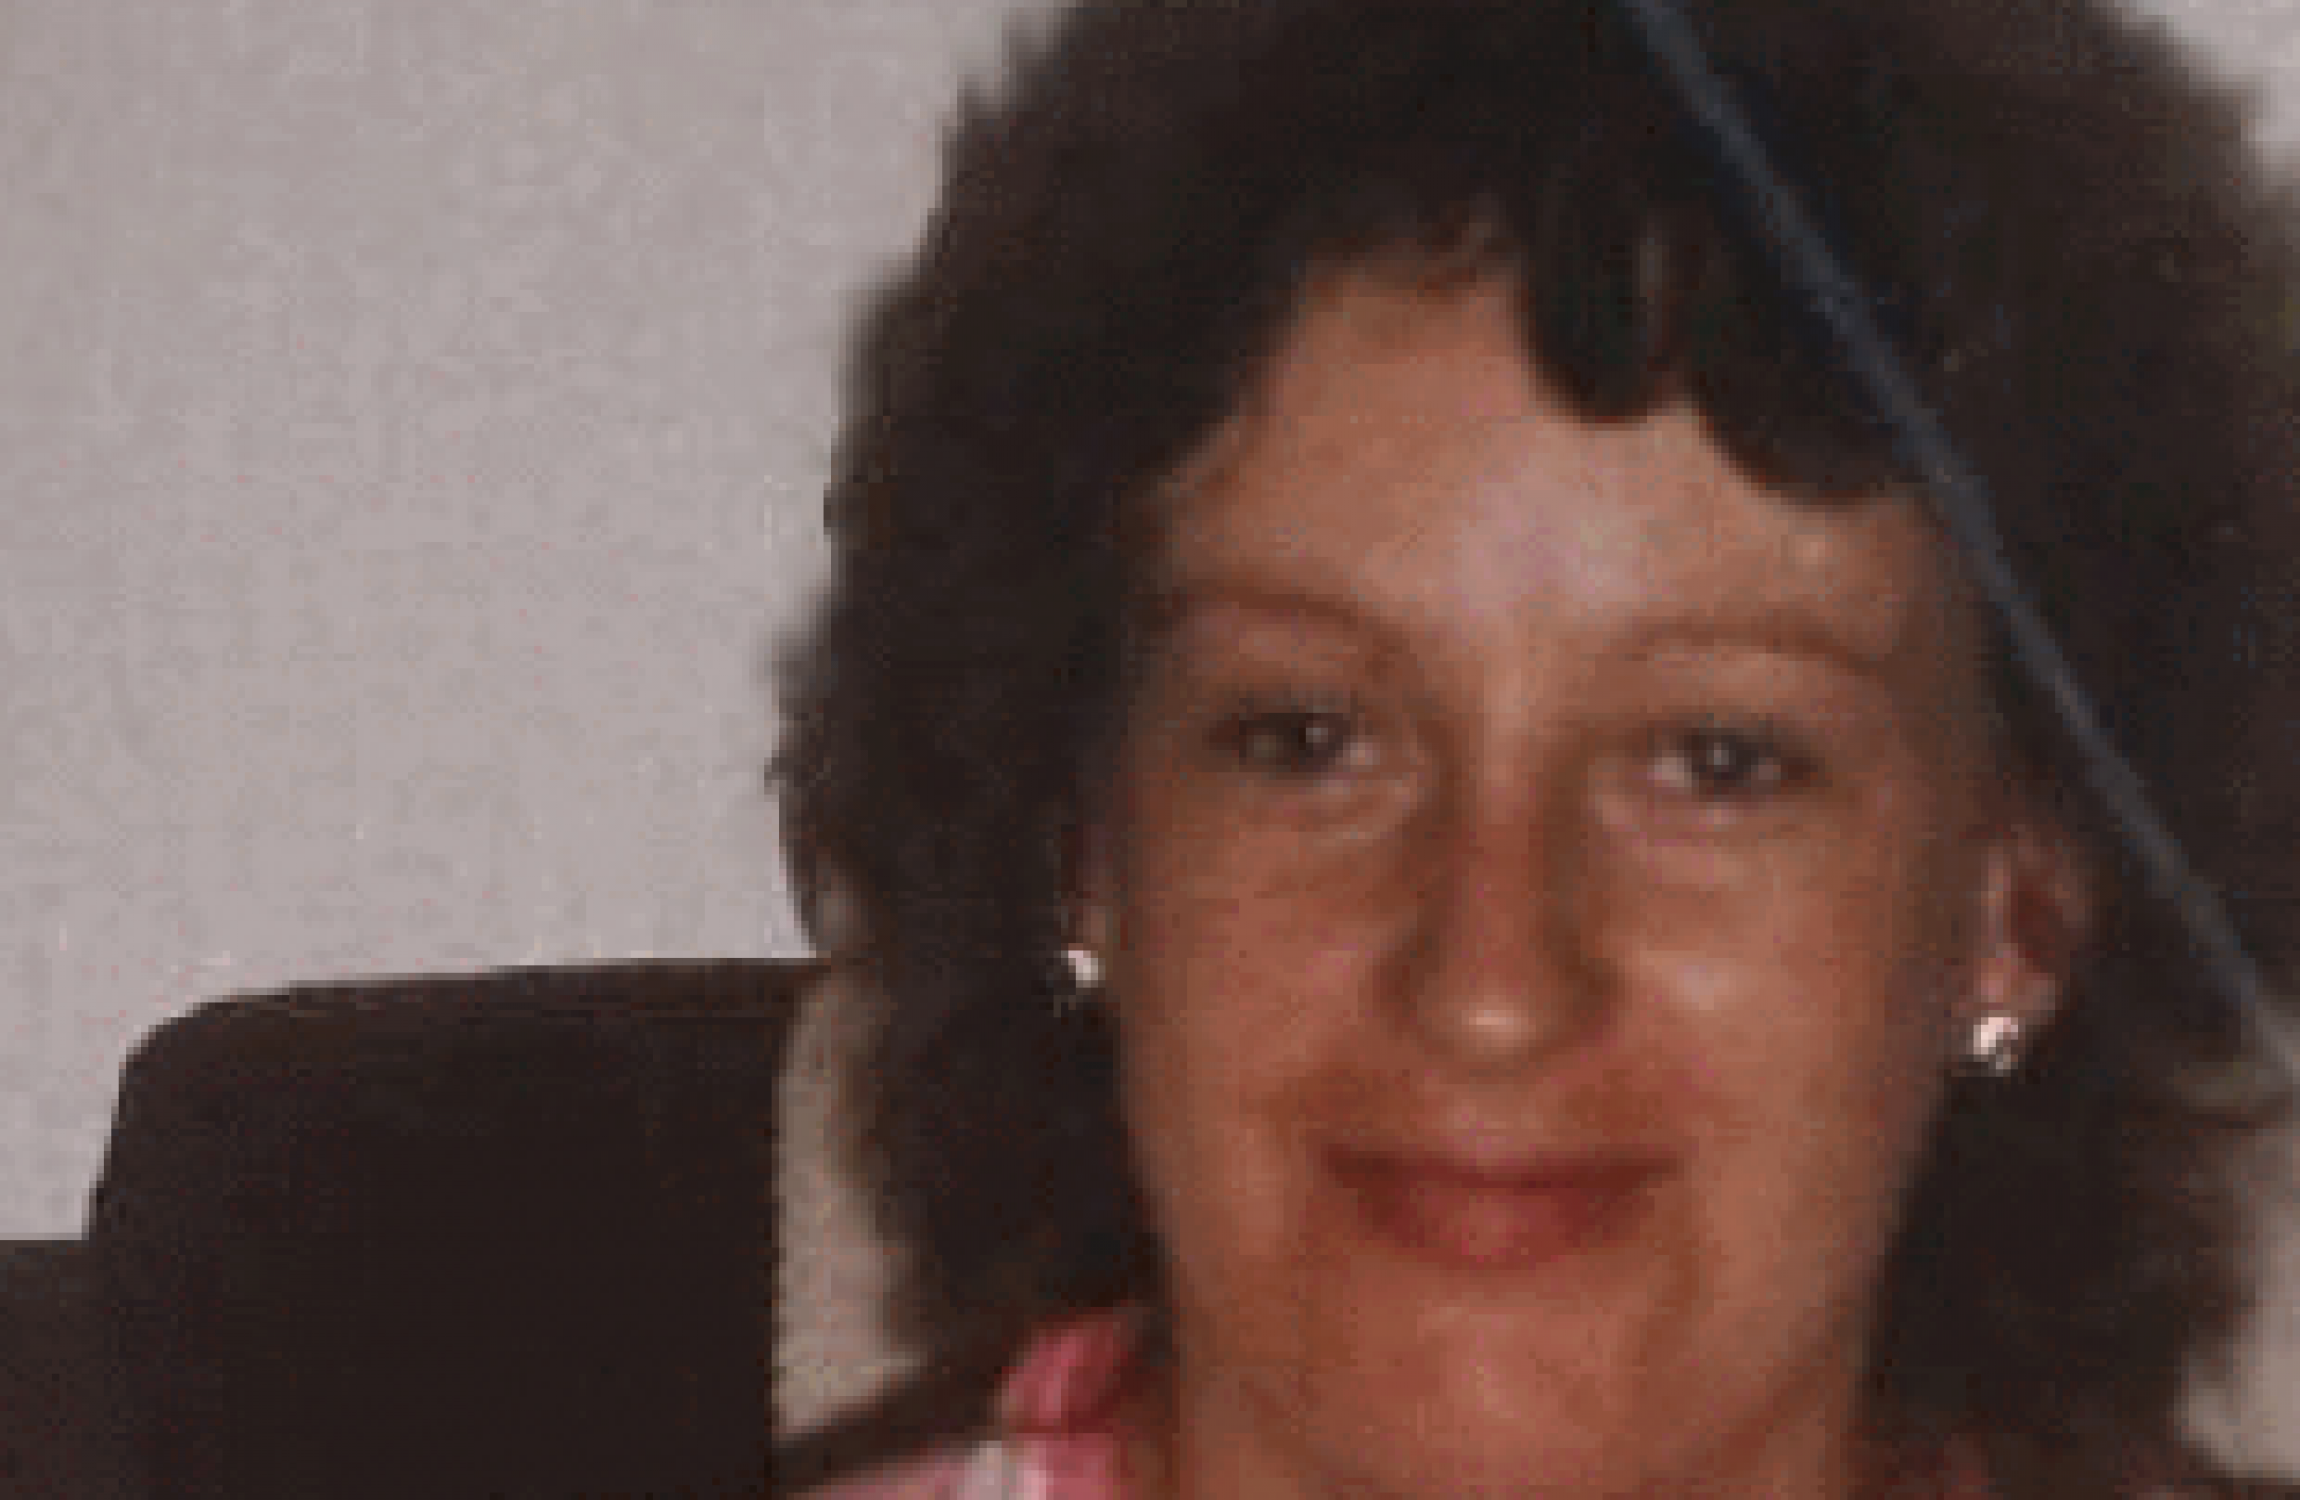 The woman, for murder, was given one year of restriction of freedom